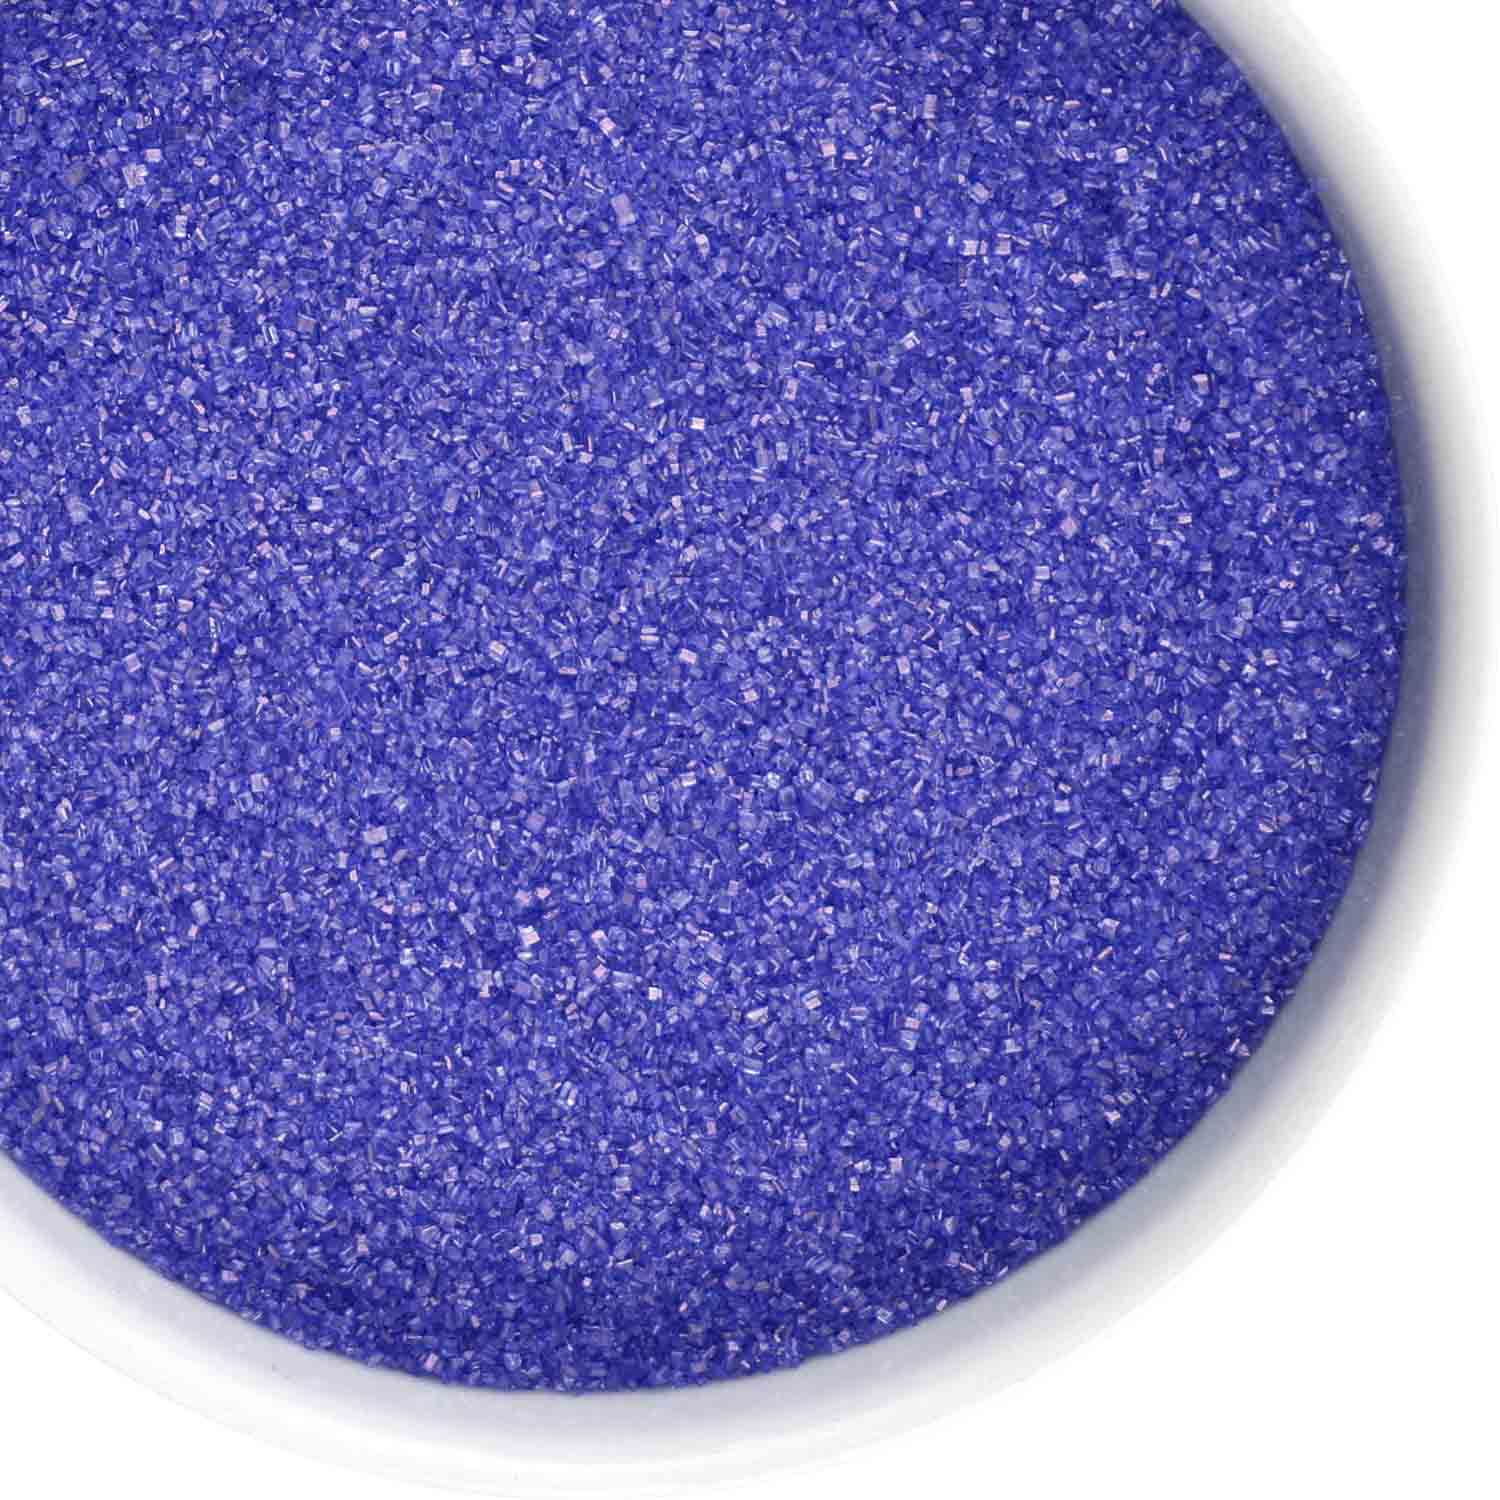 Royal Blue Sanding Sugar